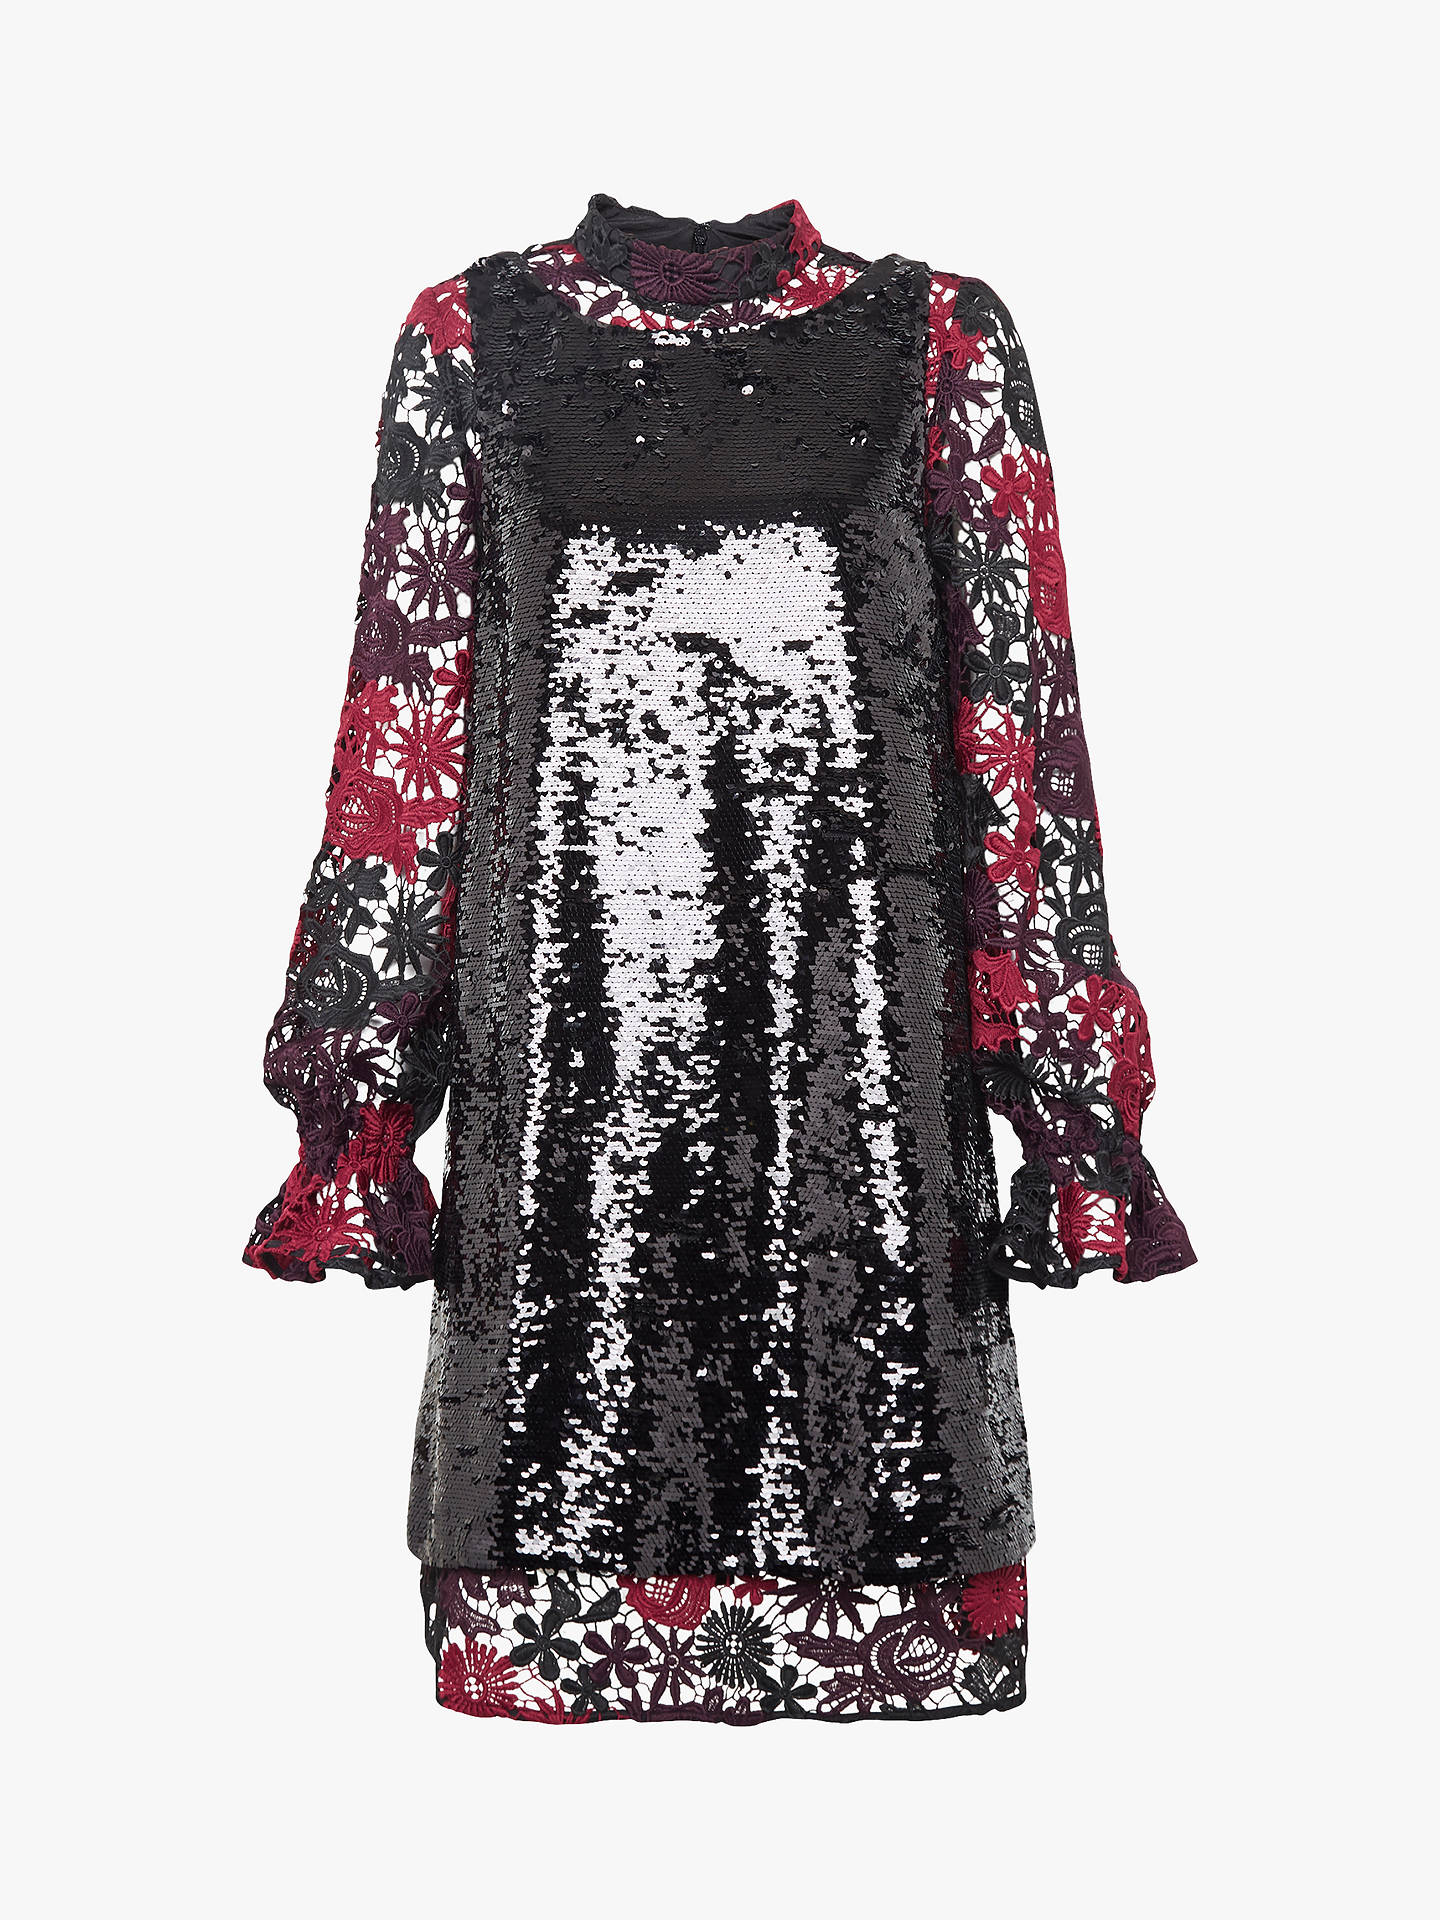 48af5c3b ... Buy French Connection Cynthia Sequin Dress, Black, 12 Online at  johnlewis.com ...